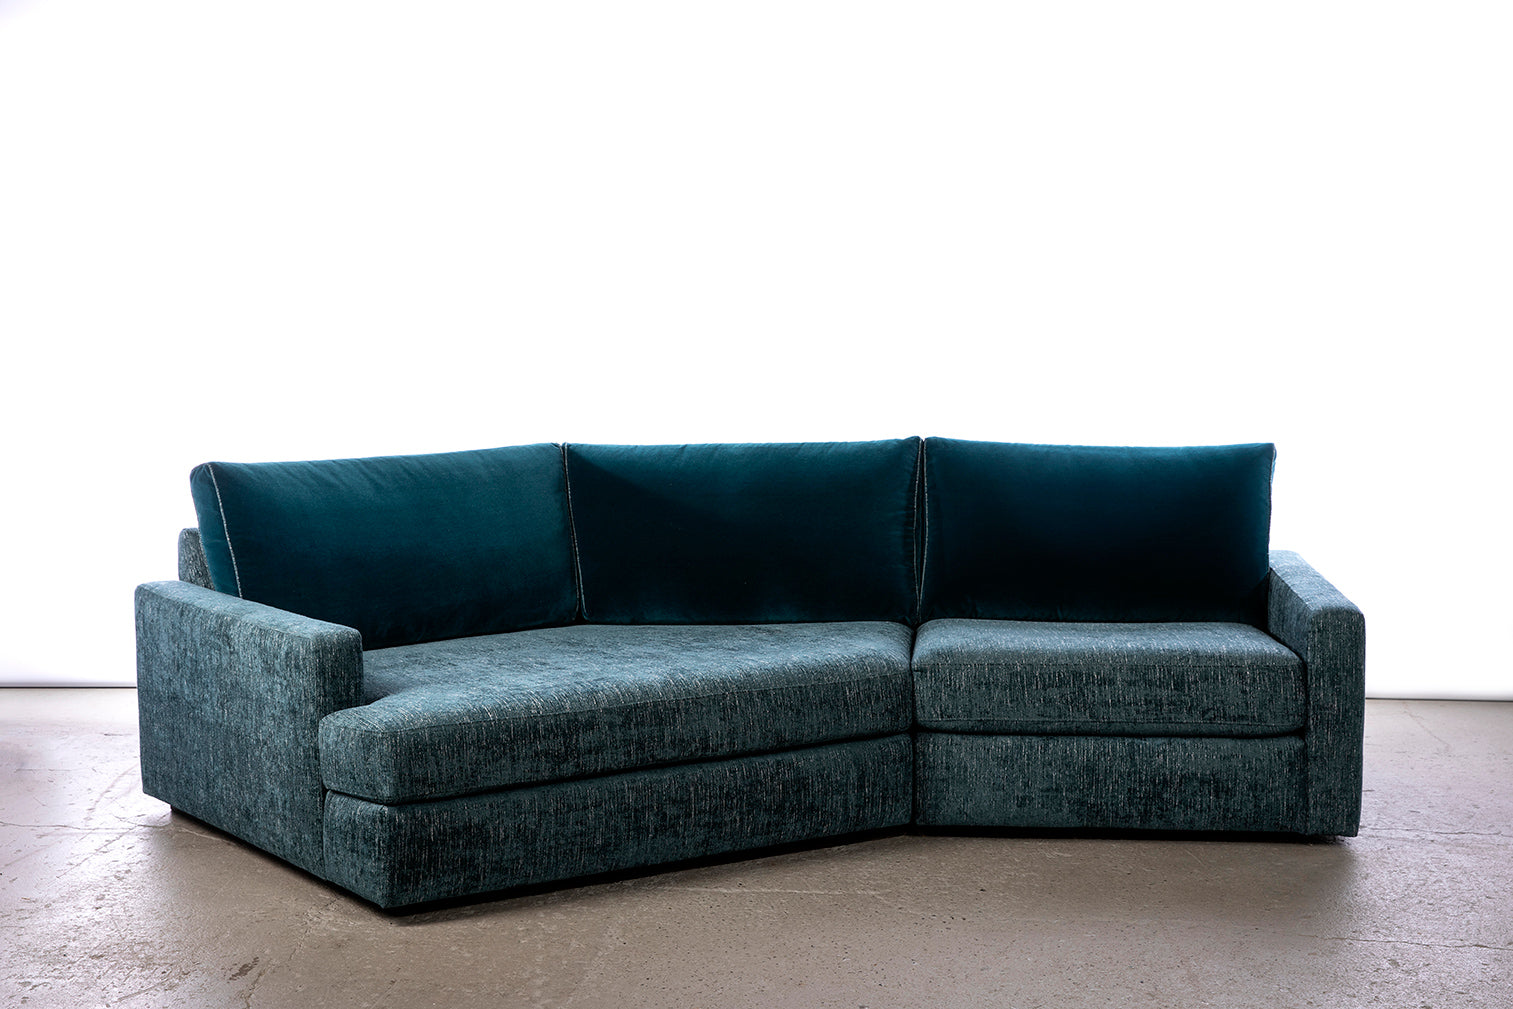 ffabb Coasty Slim Modular Lagoon Small LHF Sectional Sofa in peacock mohair/chenille